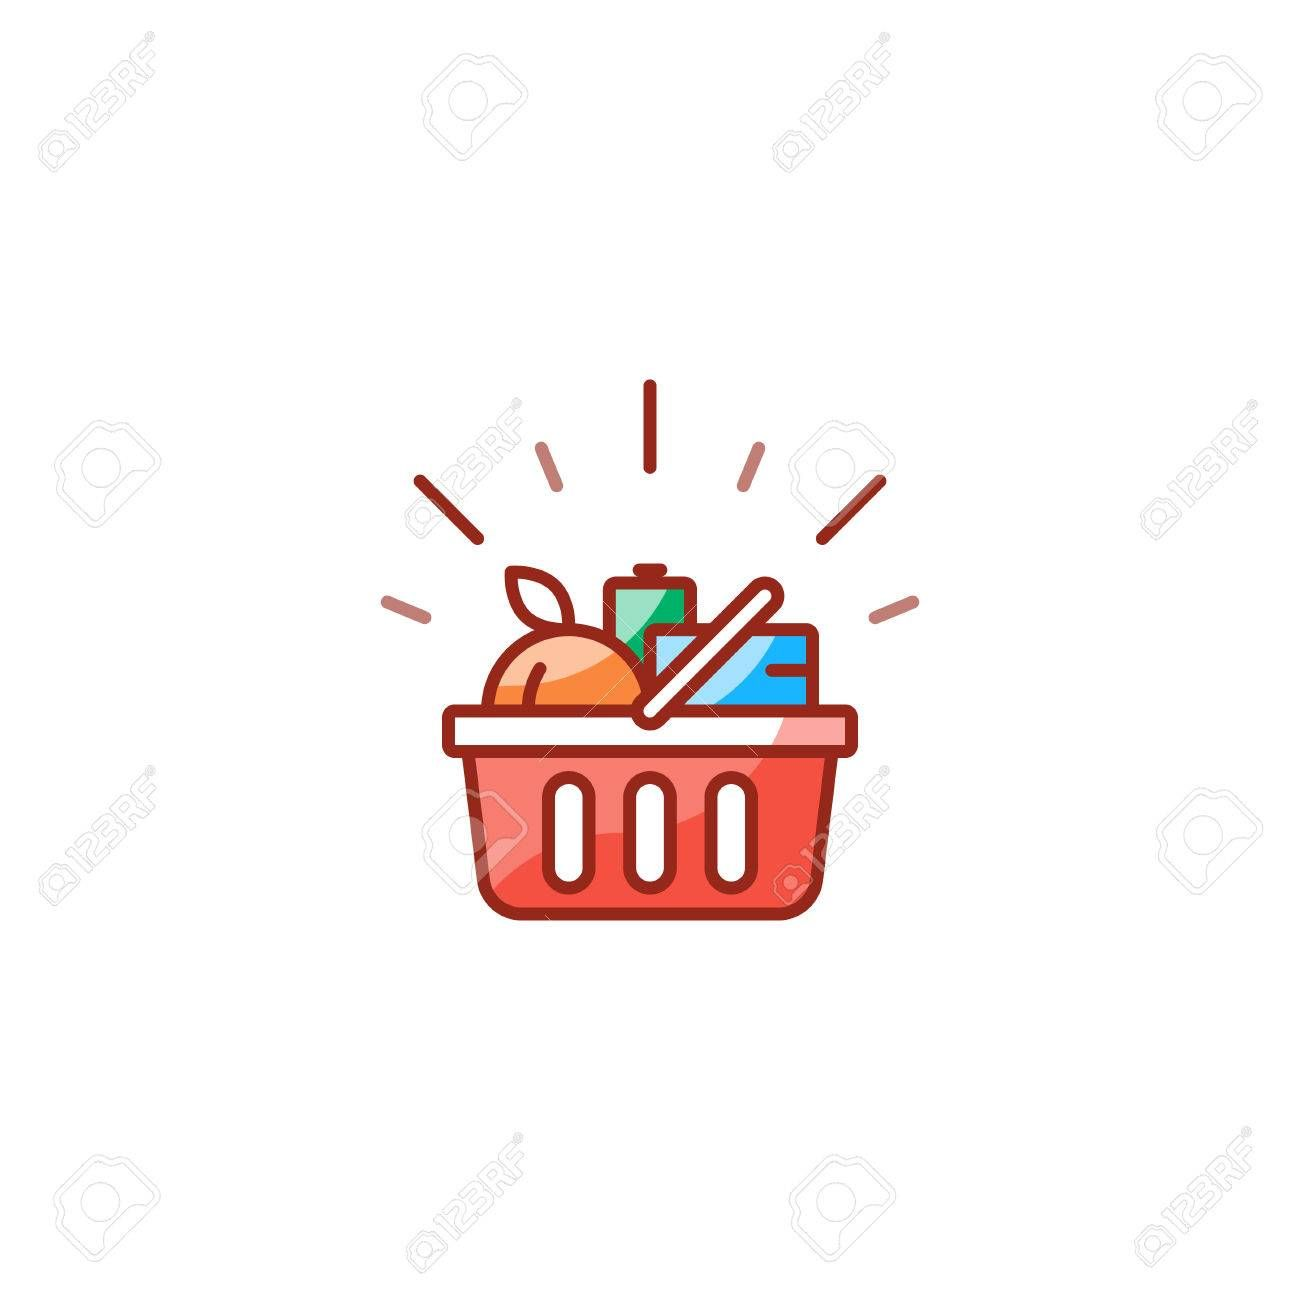 Grocery shop basket full of food shopping special offer promotion best deal good quality products vector line icon design